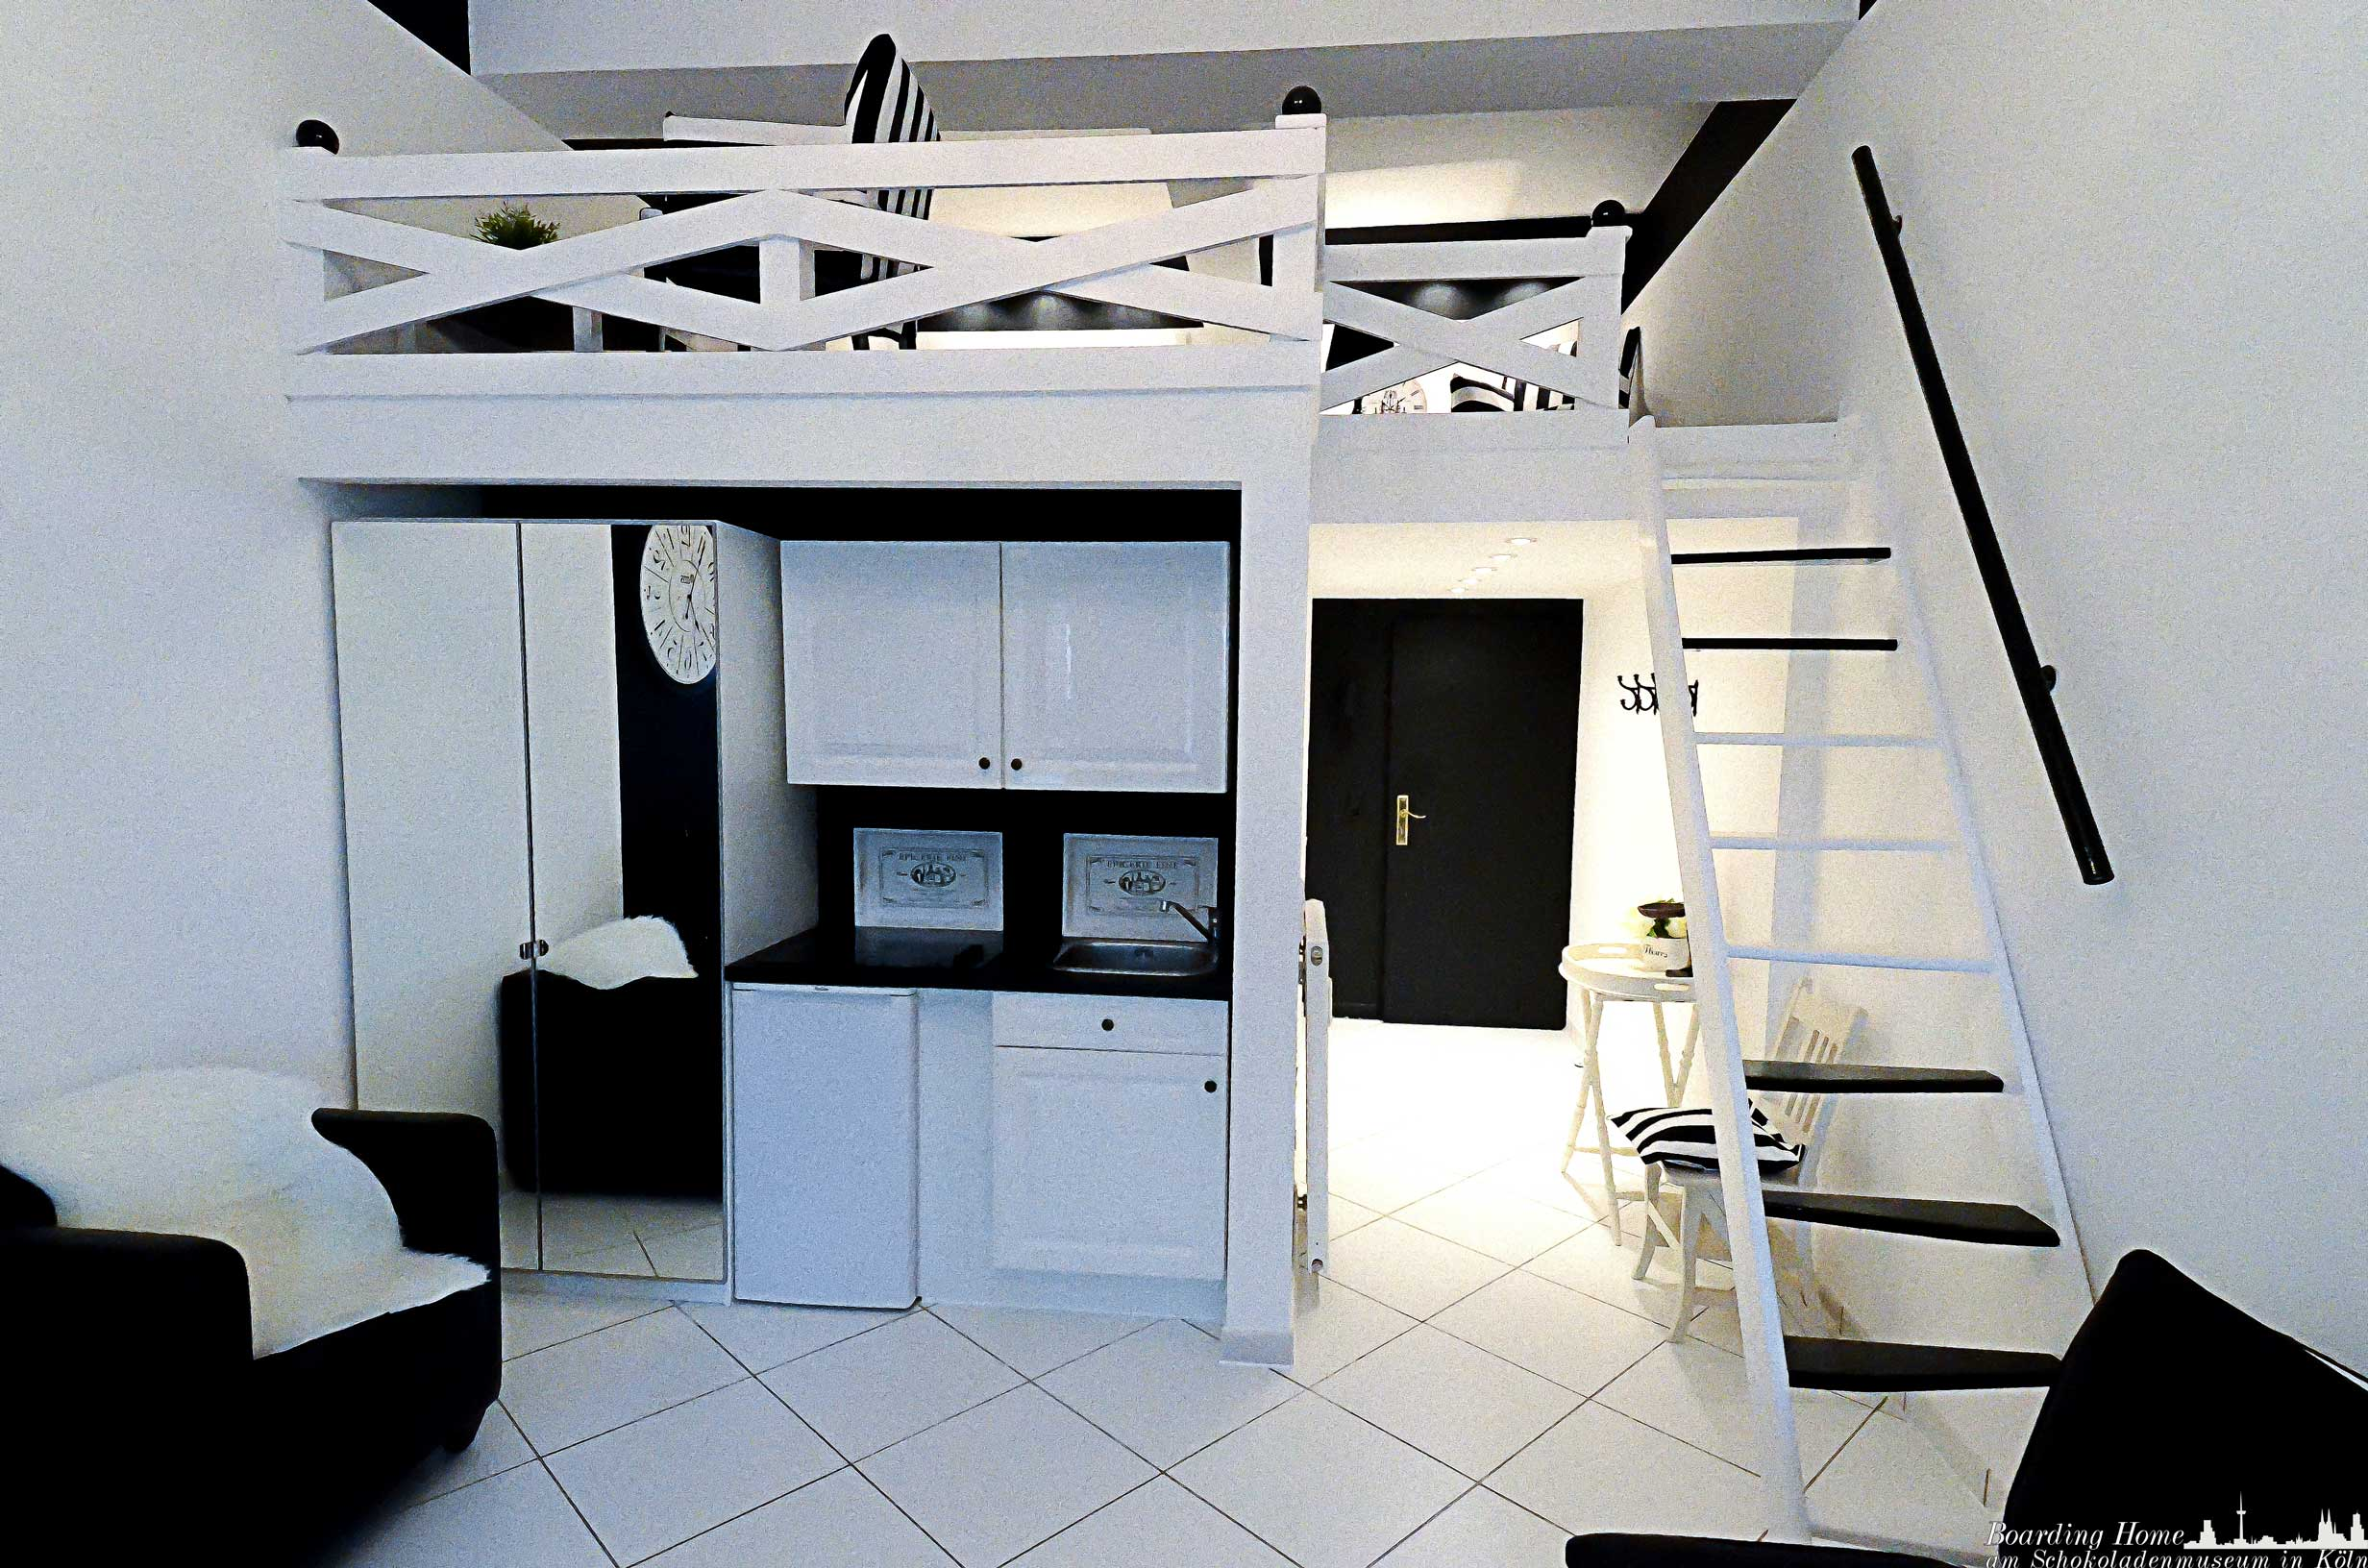 appt1_kitchenette